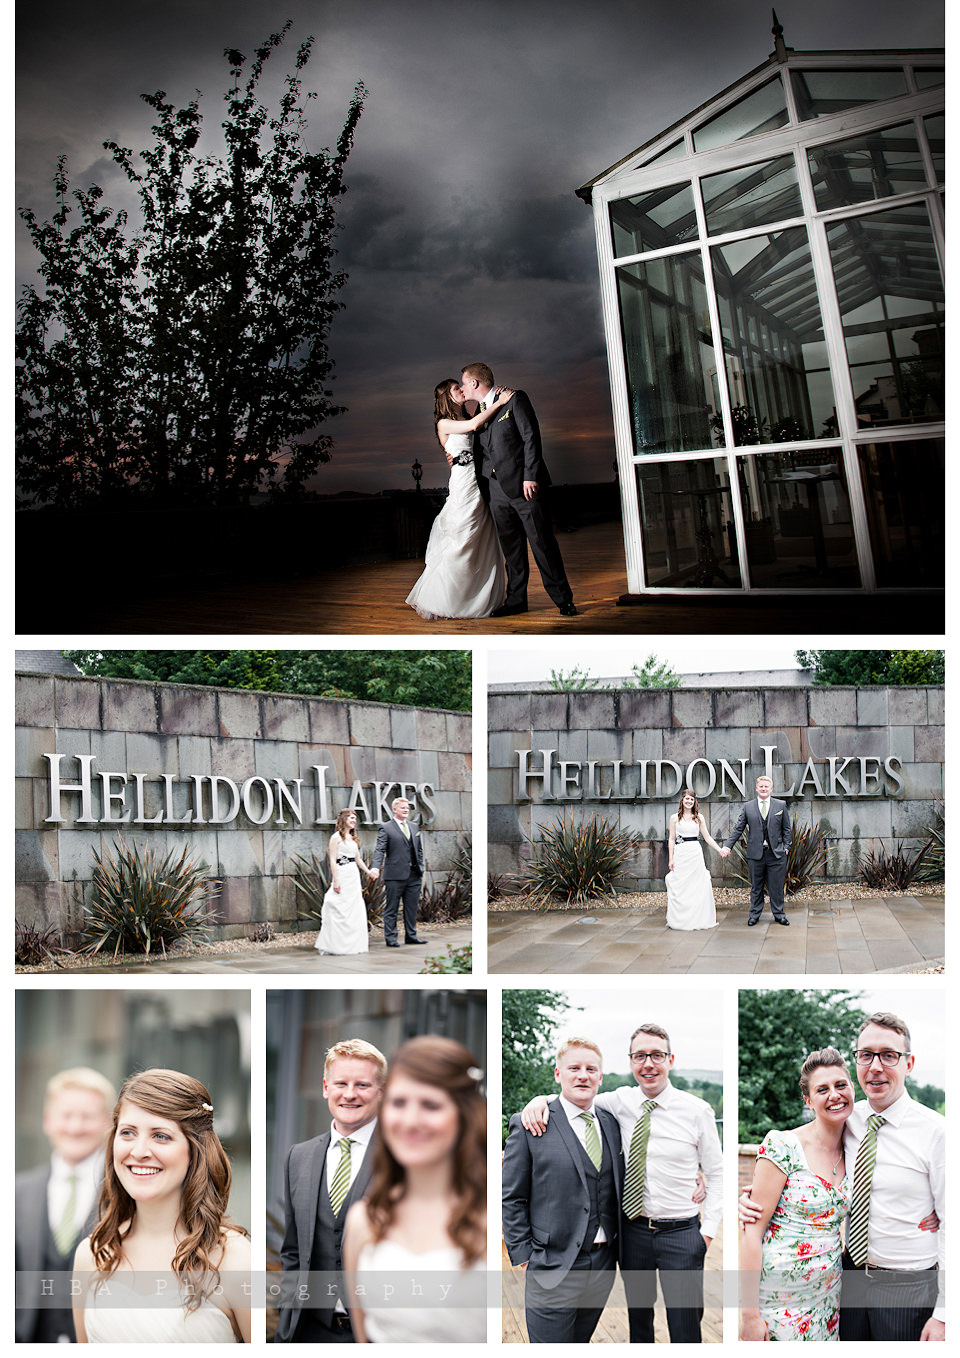 The wedding of Josey & Sam at Hellidon Lakes Golf & Spa Hotel, by contemporary Derbyshire photographers HBA Photography. Some photos after dinner